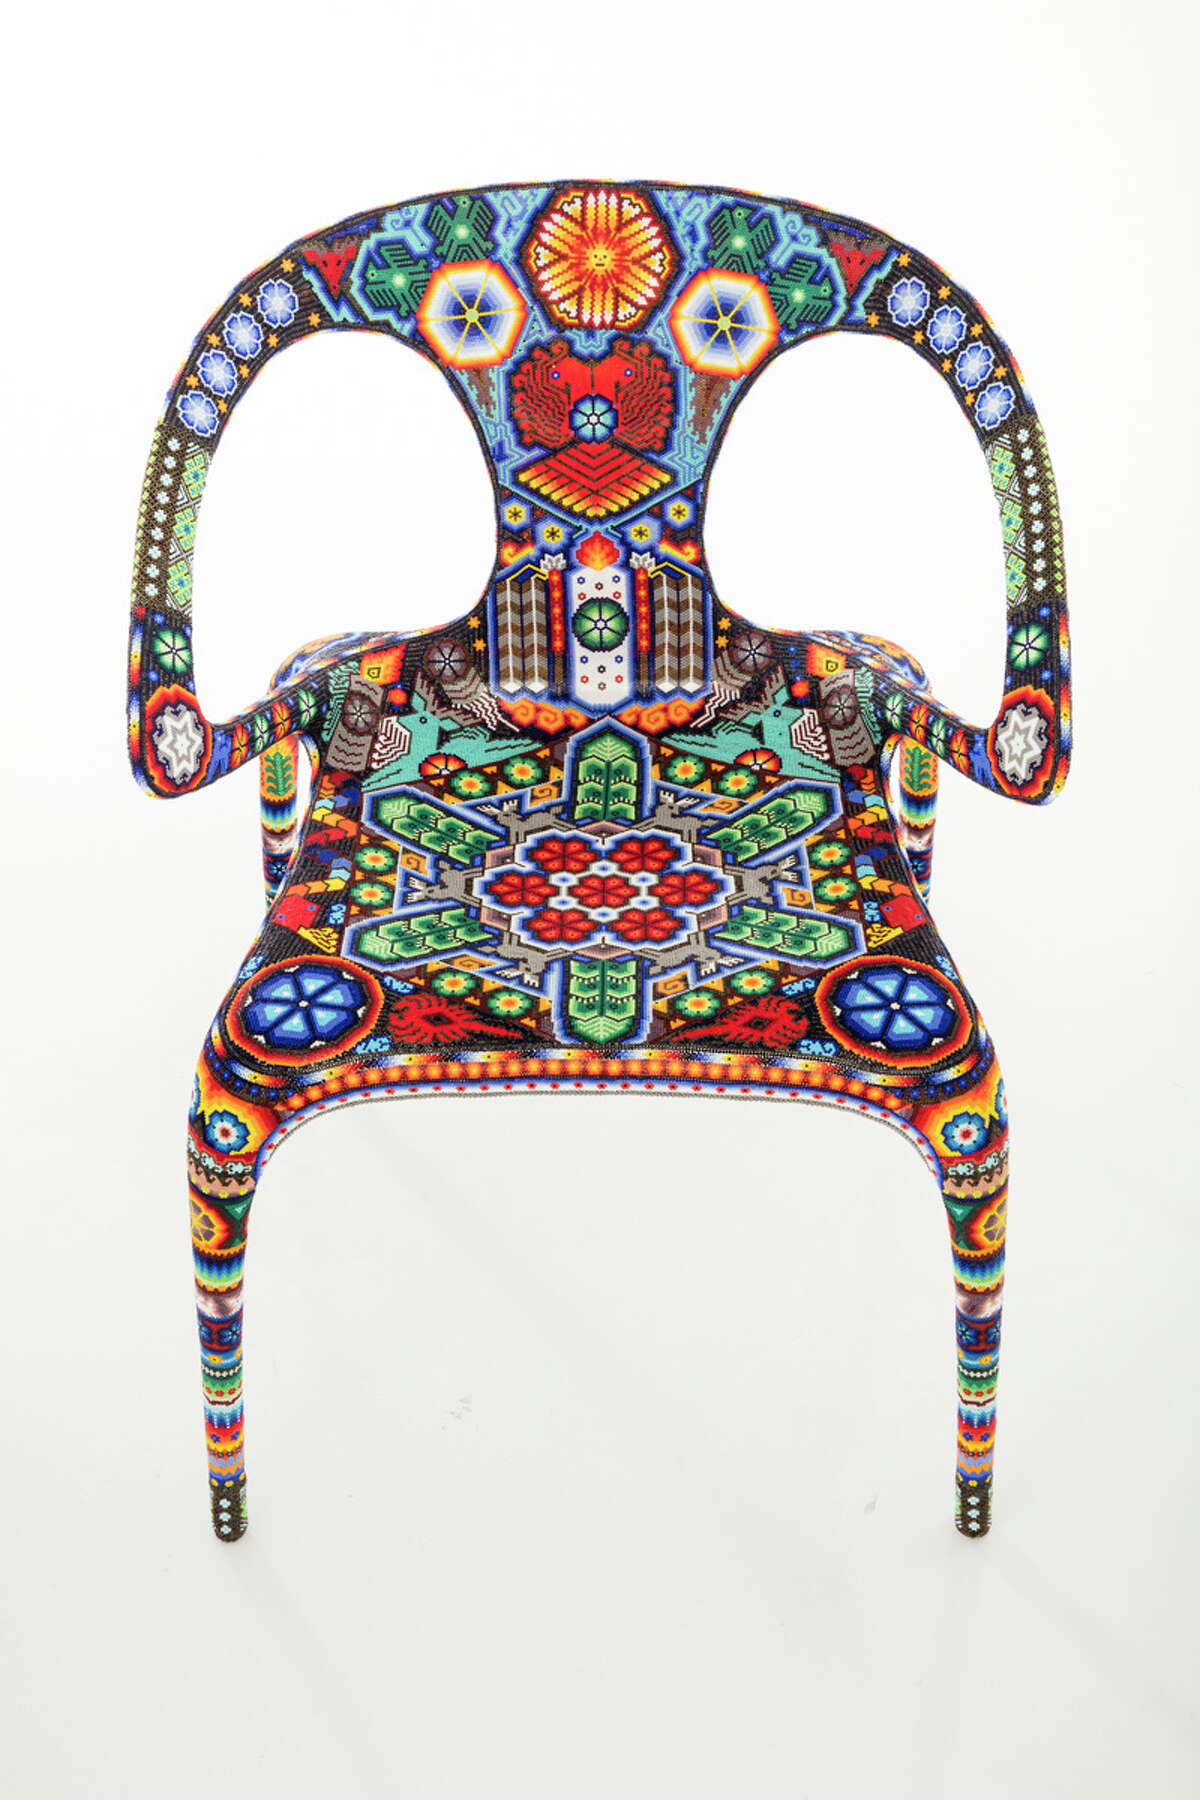 Traditional Mexican craftsmen reinvented Roche Bobois' iconic Ava chair in their own style.